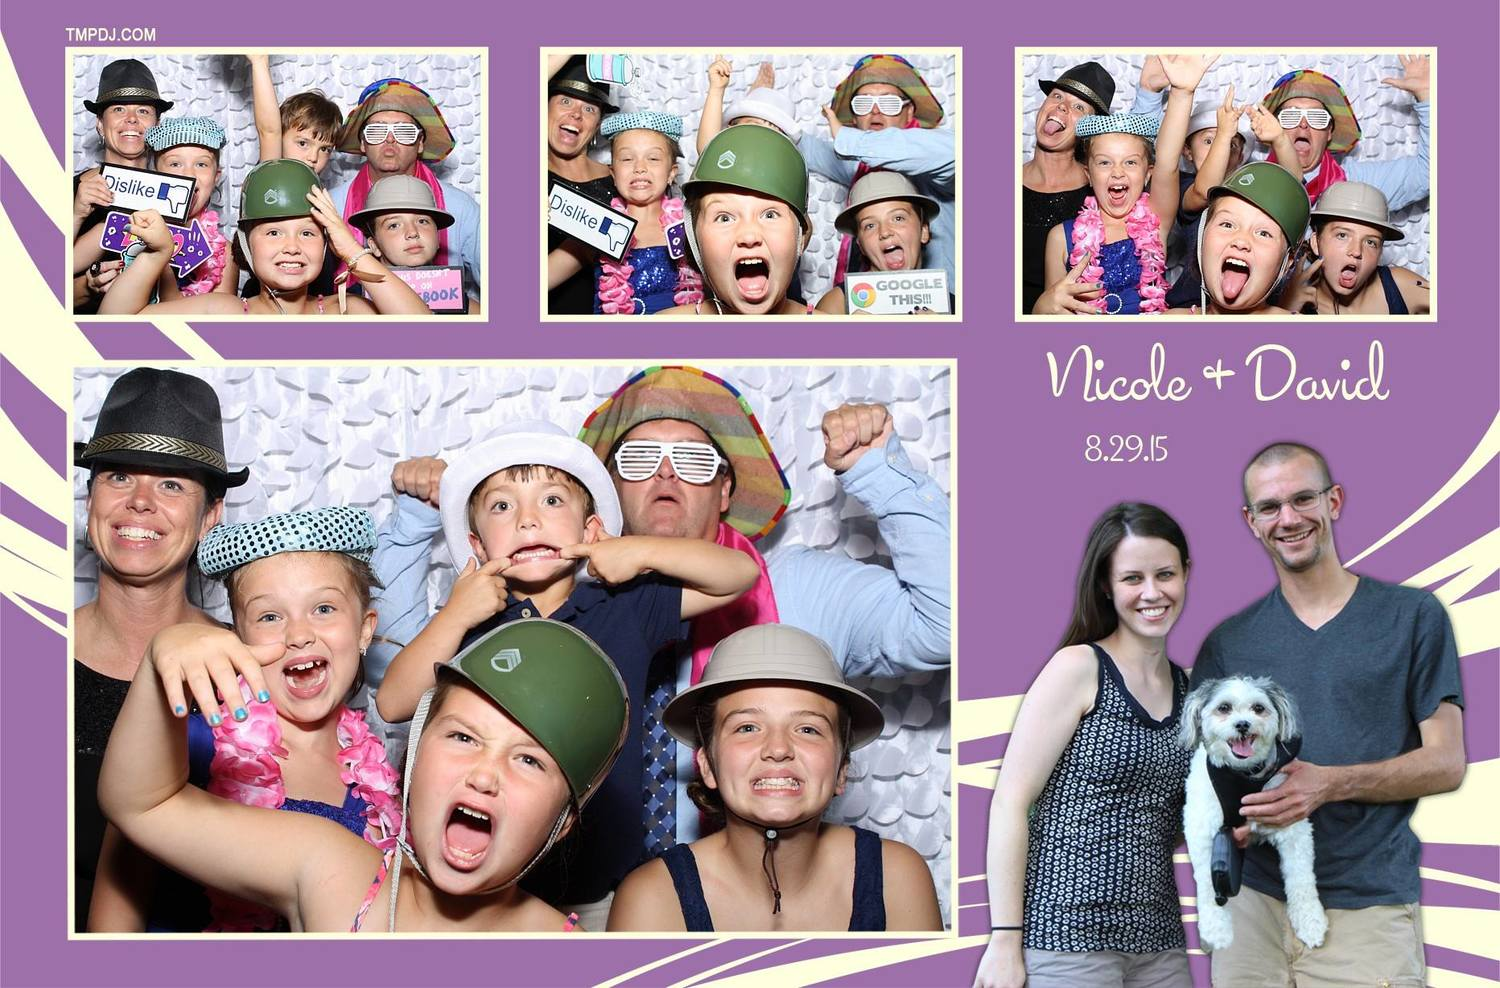 photo-booth-rochester-ny-14.jpg